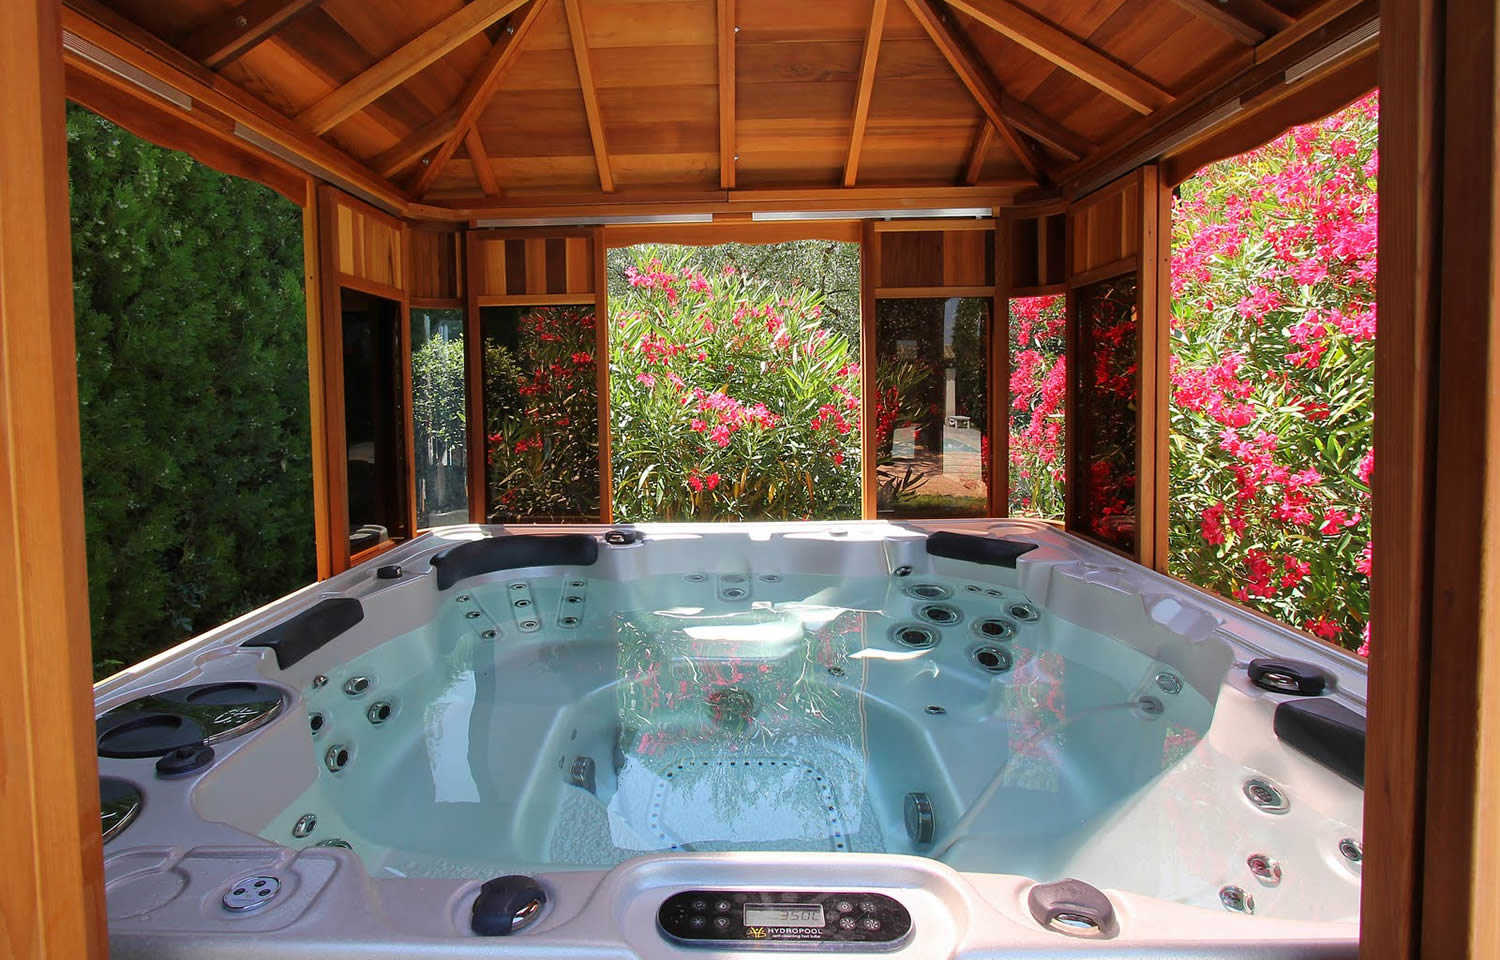 Pool spas hartlepool no 1 hot tubs swim spas supplier - Jacuzzi pour jardin ...